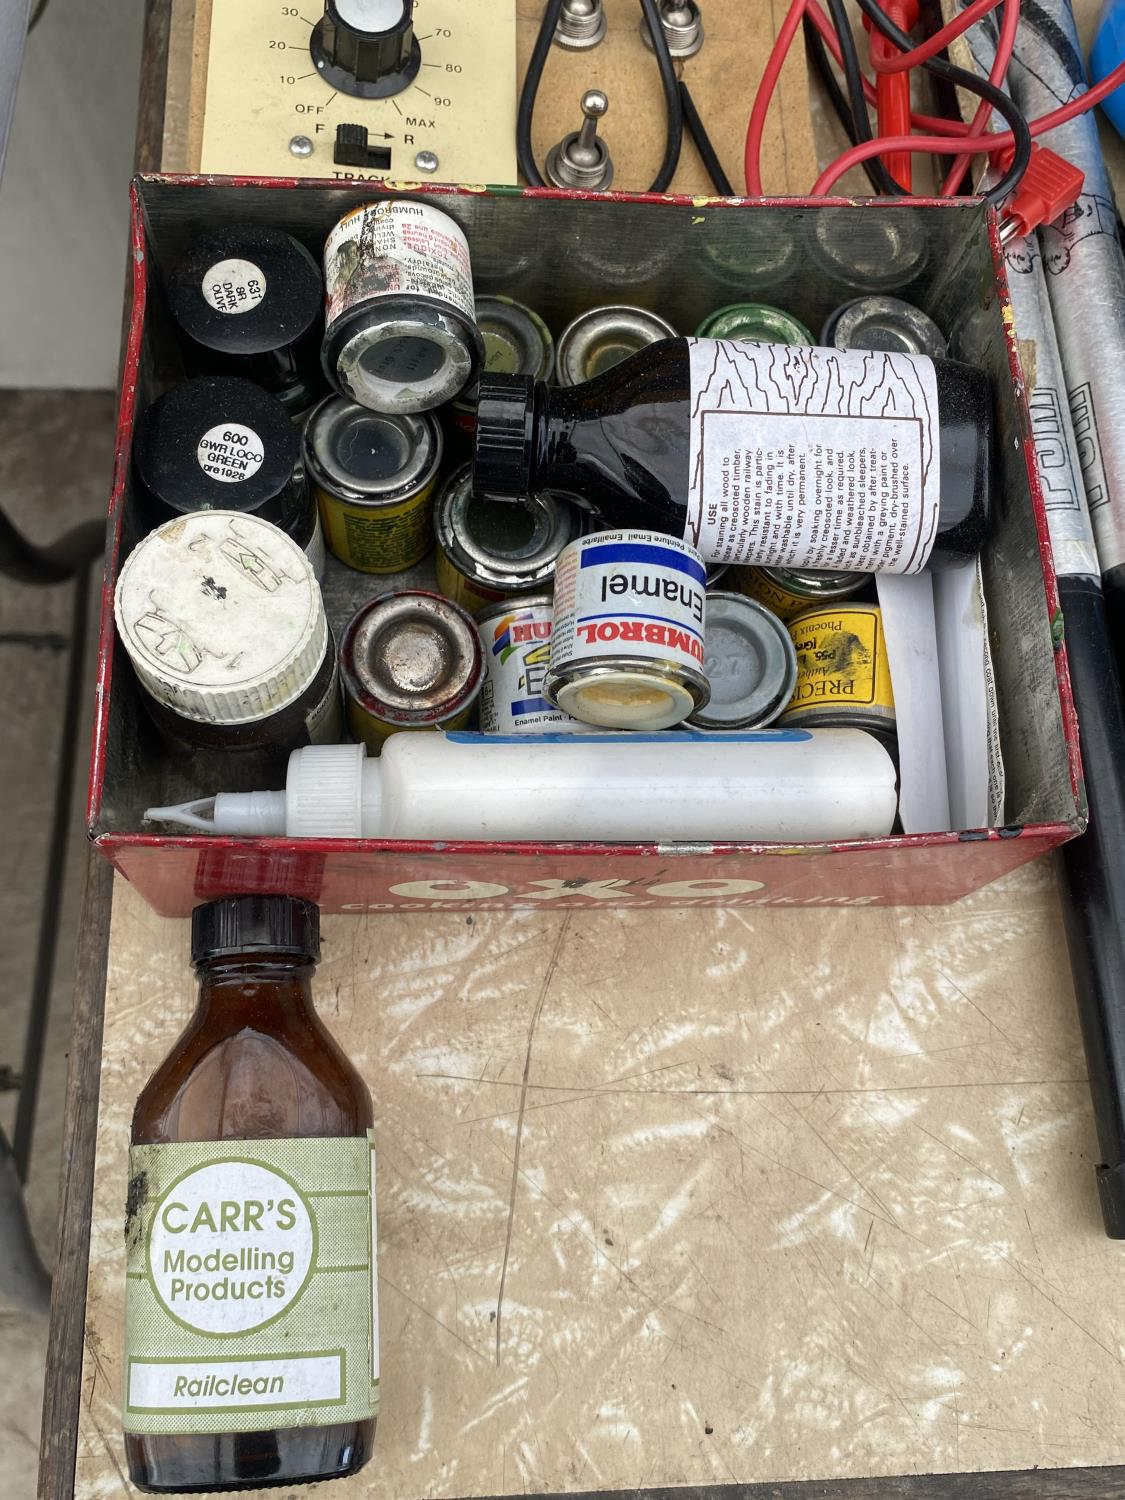 AN ASSORTMENT OF ARTS AND CRAFTS EQUIPMENT TO INCLUDE SOLDERING IRONS, A CLAMP AND MODEL PAINT AND - Image 2 of 6